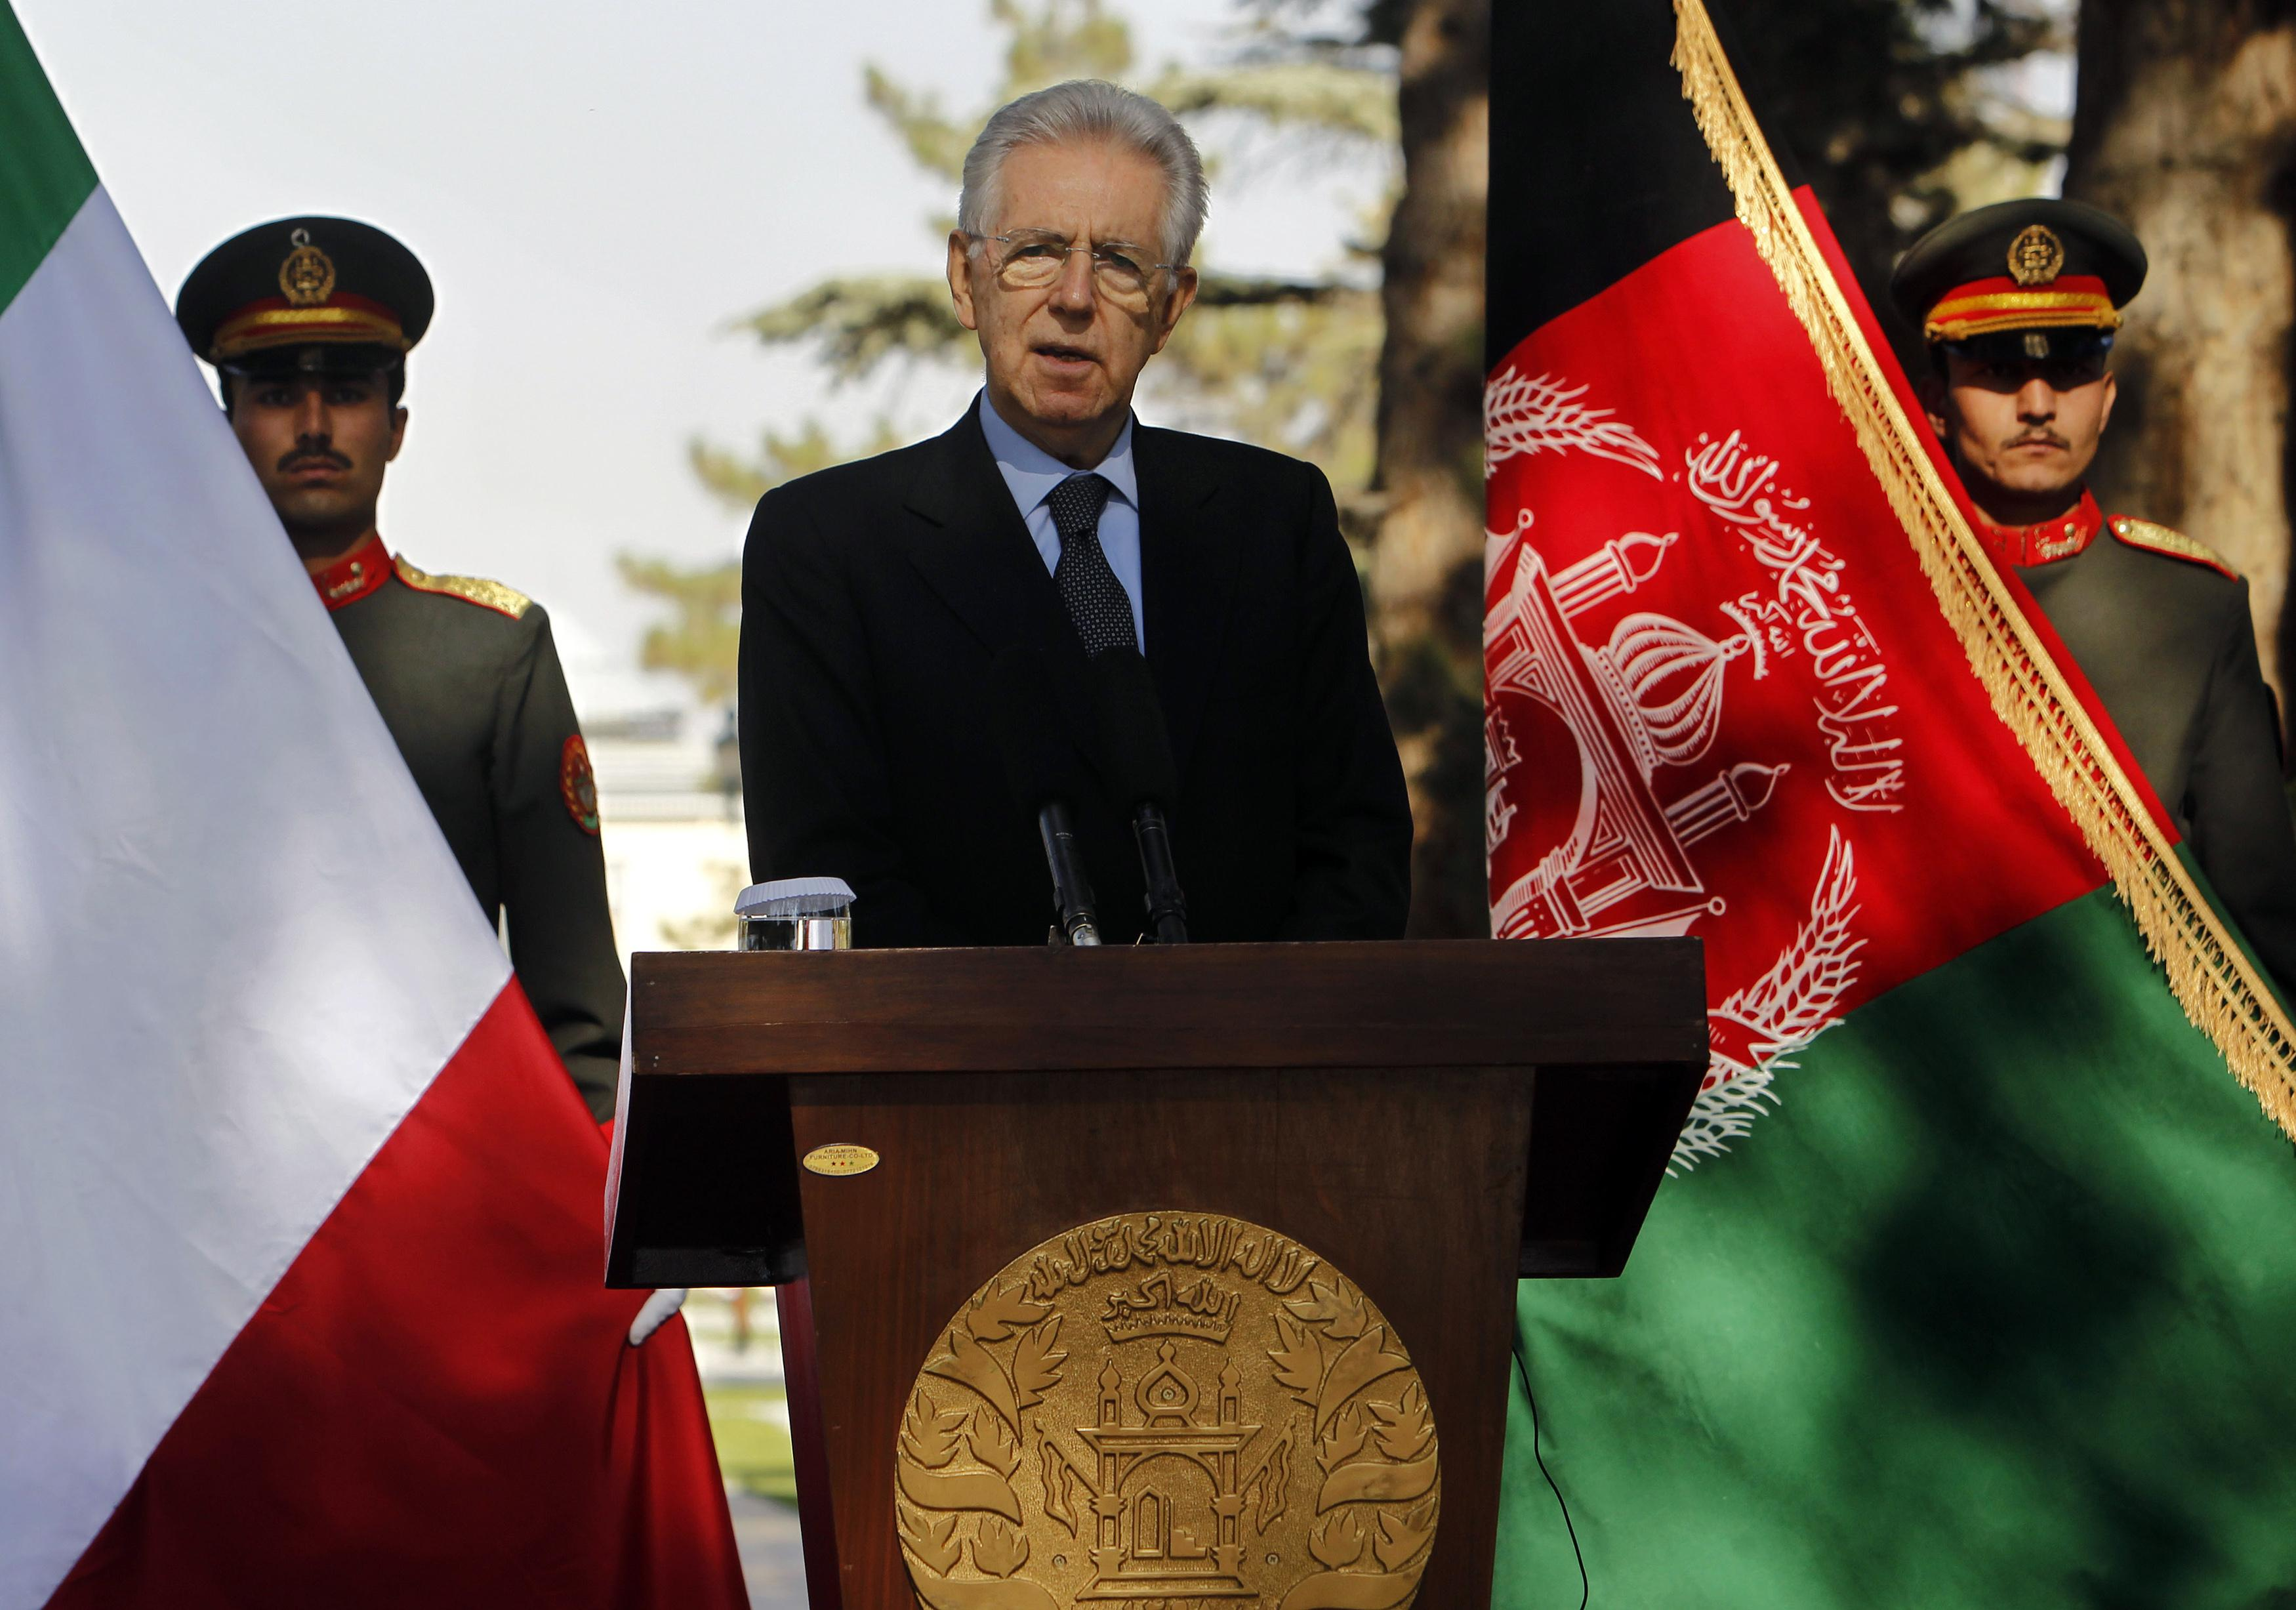 Monti in Afghanistan